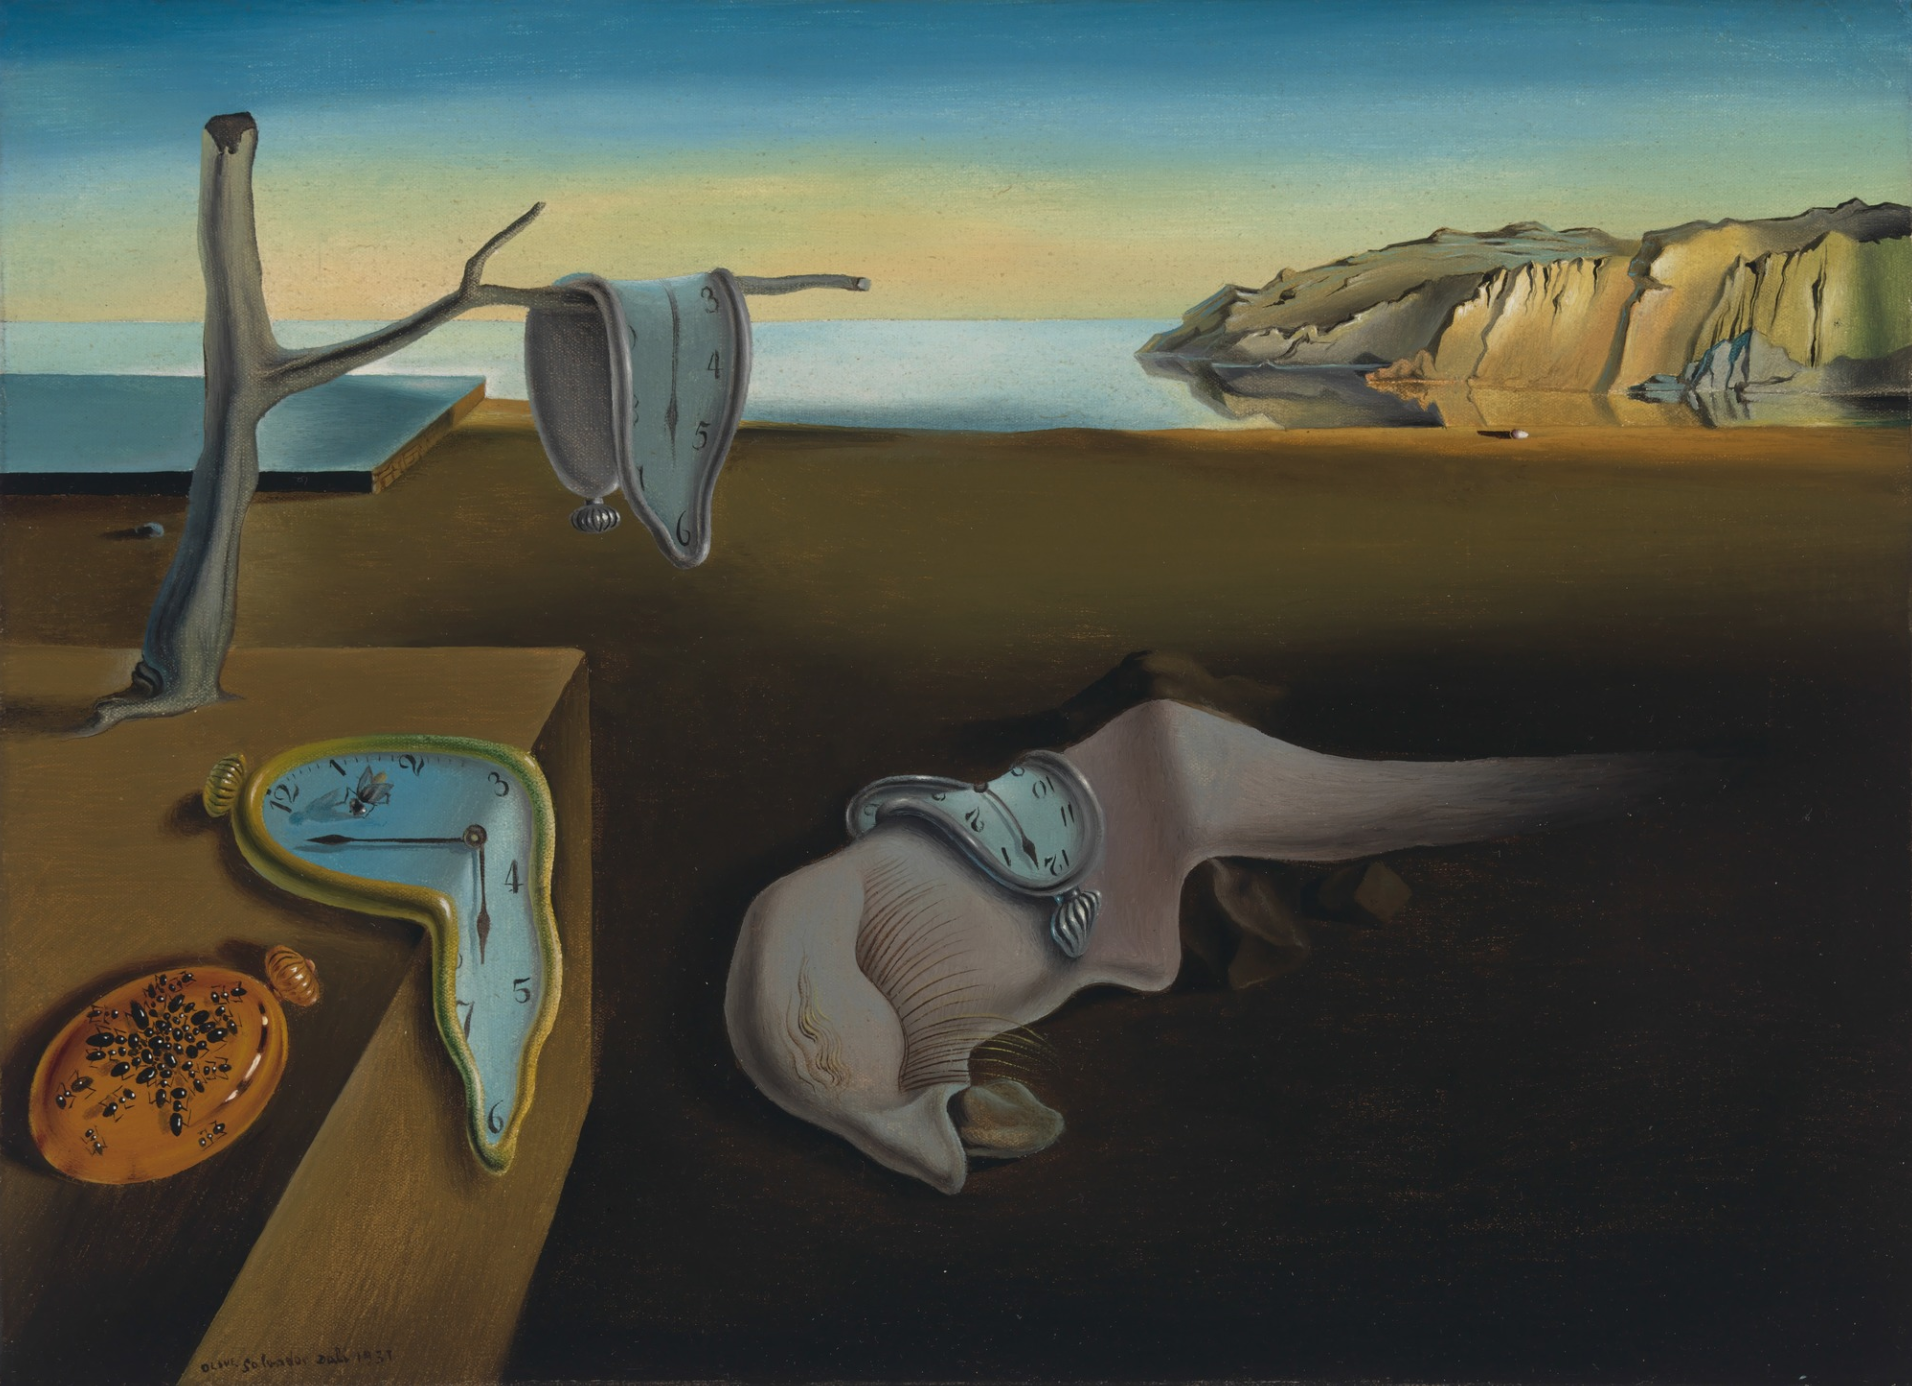 https://media.thisisgallery.com/wp-content/uploads/2018/12/salvadordali_01.png